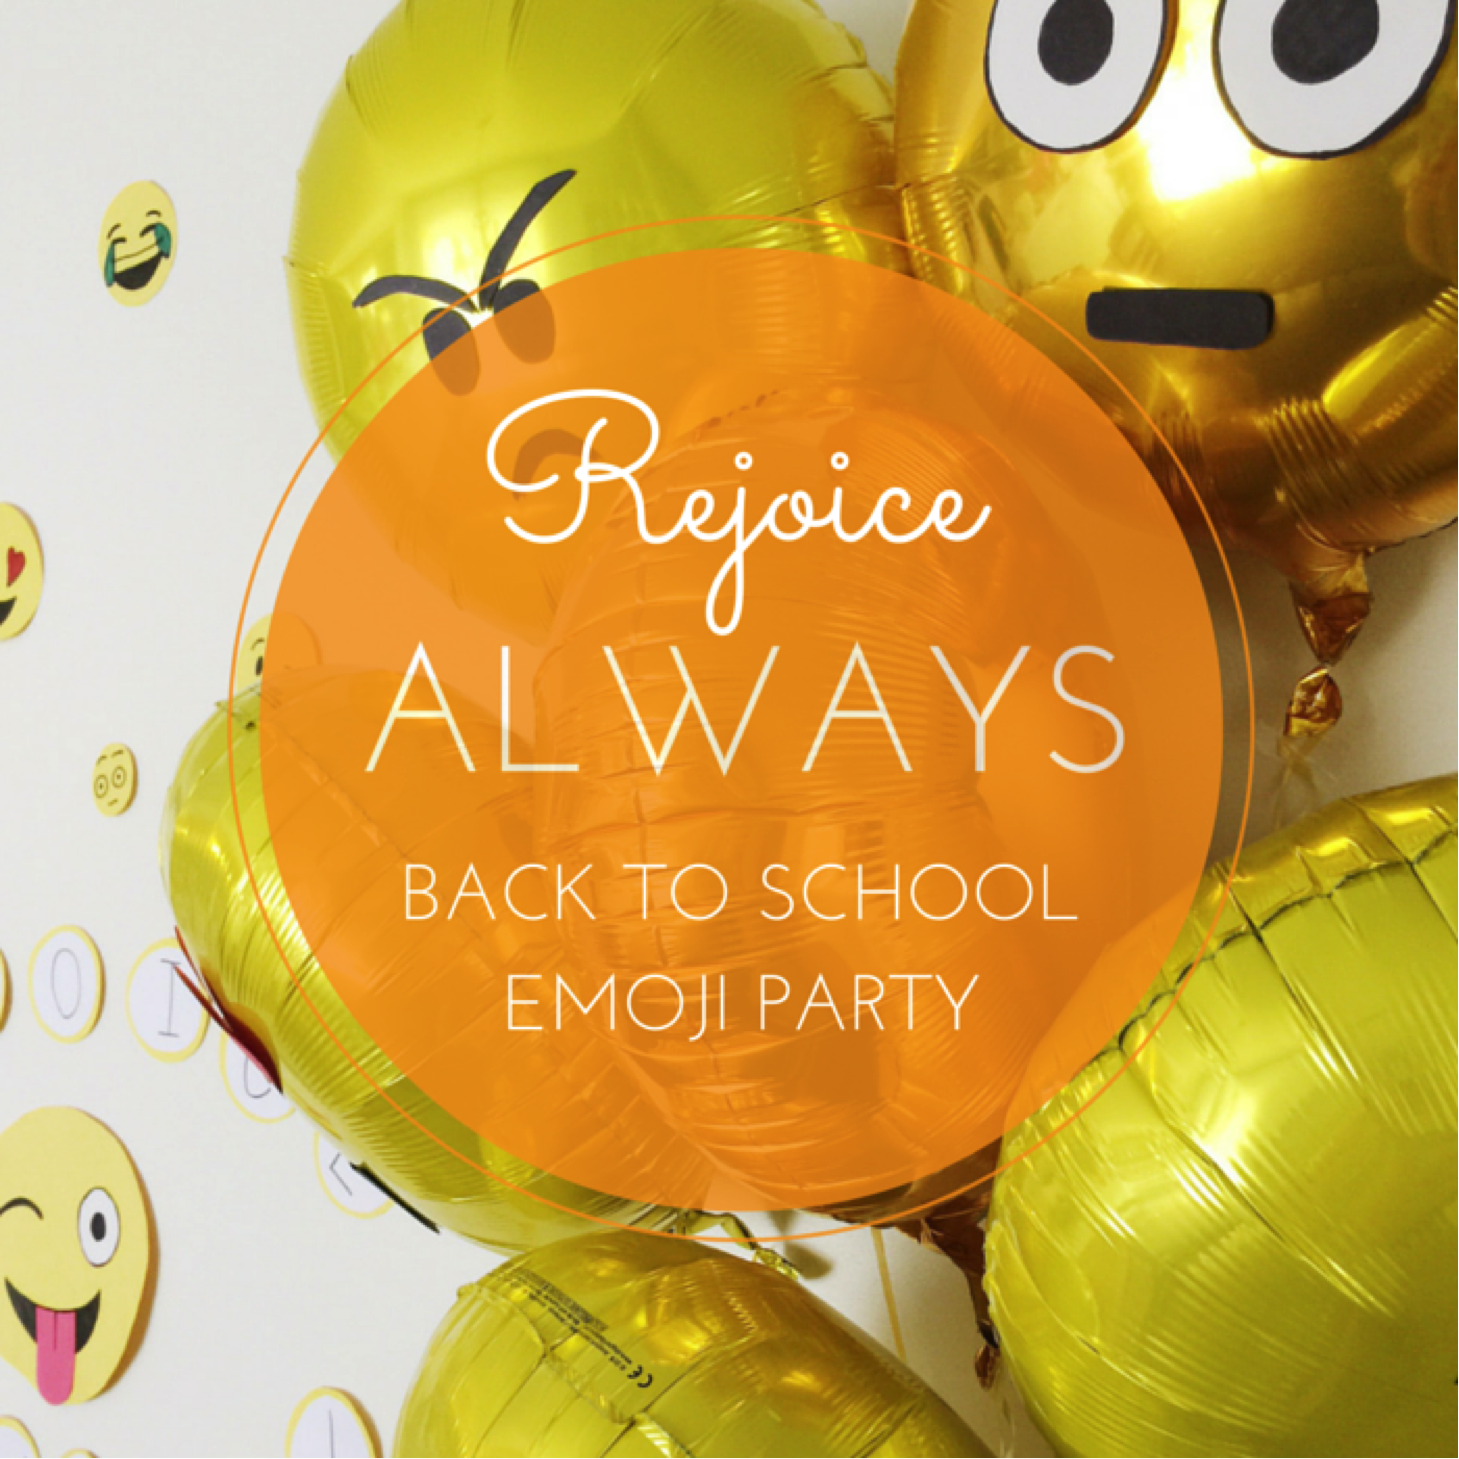 rejoice_always_back_to_school_party.jpeg